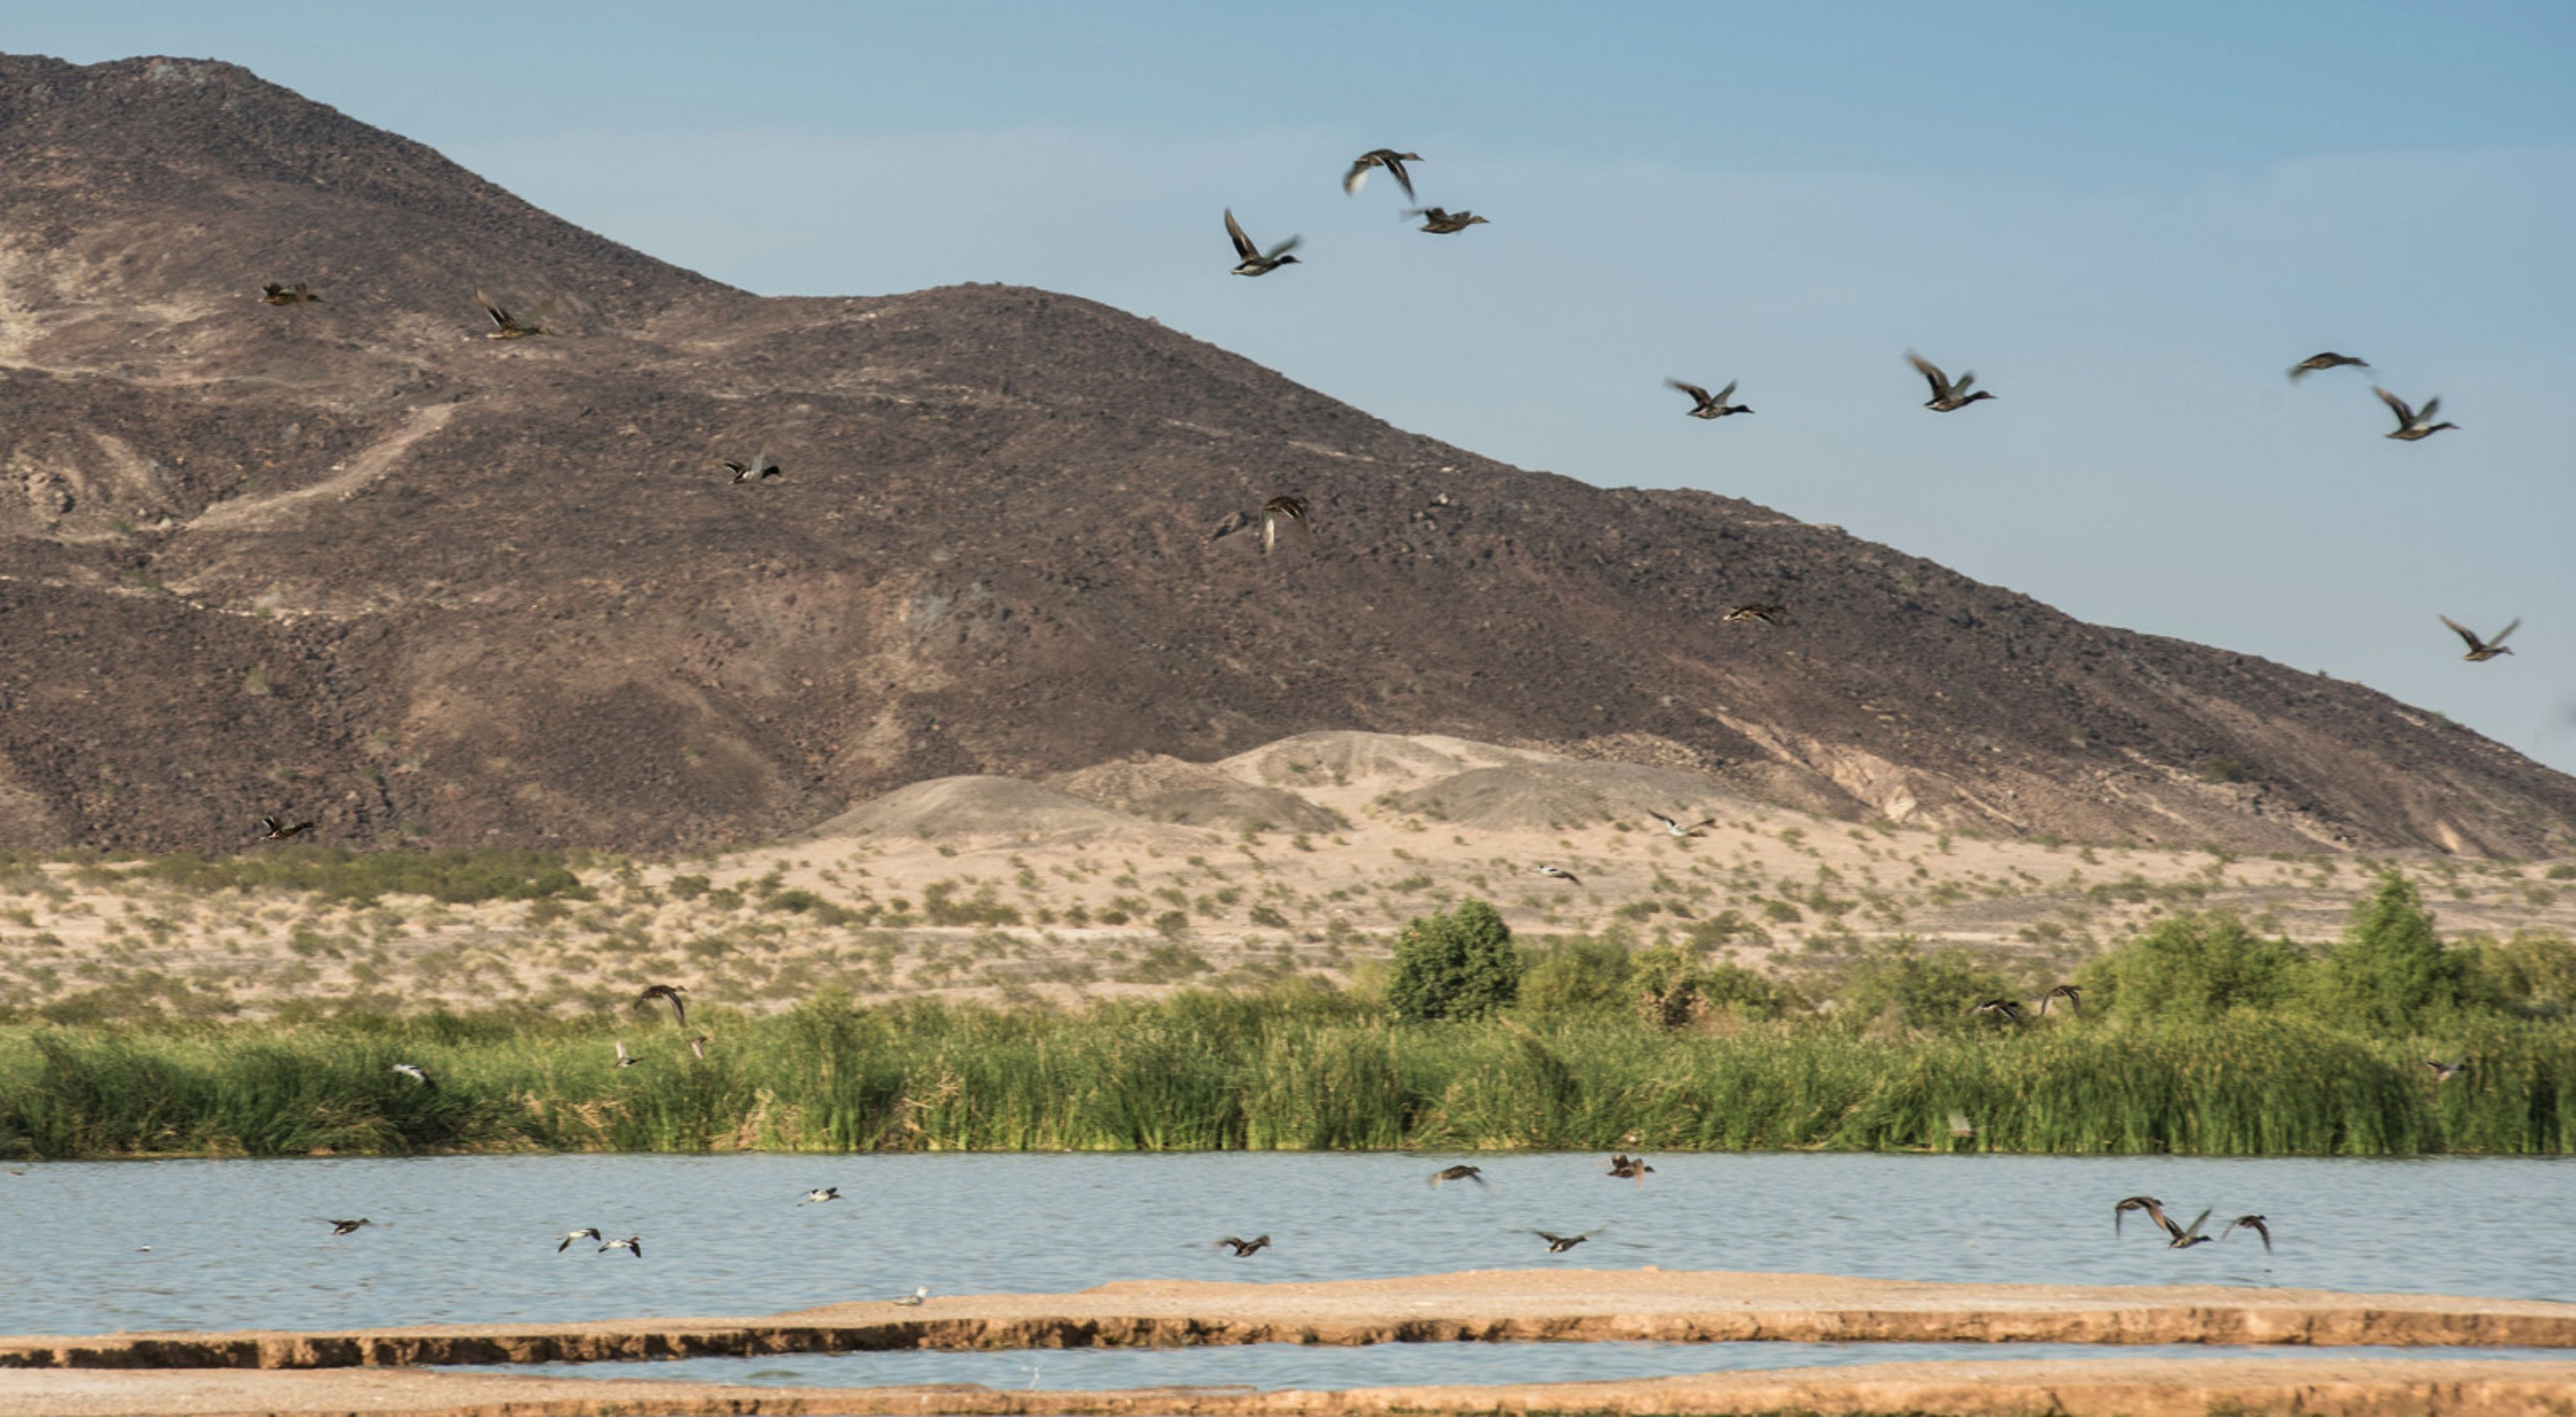 Birds flying above Las Arenitas wetland.